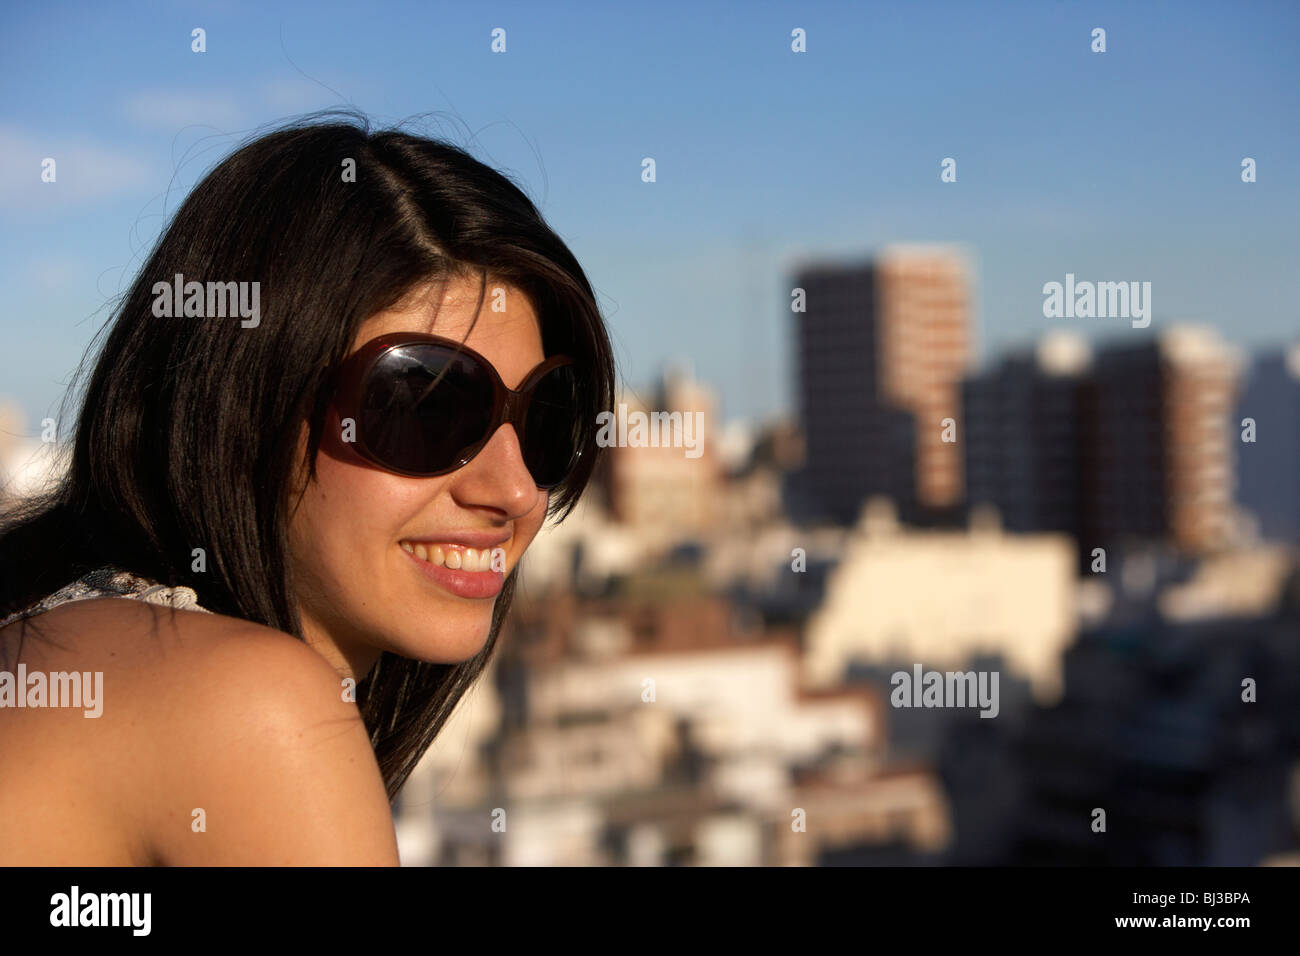 young hispanic latin woman with dark brown hair wearing sunglasses looking out on a hot summer day - Stock Image